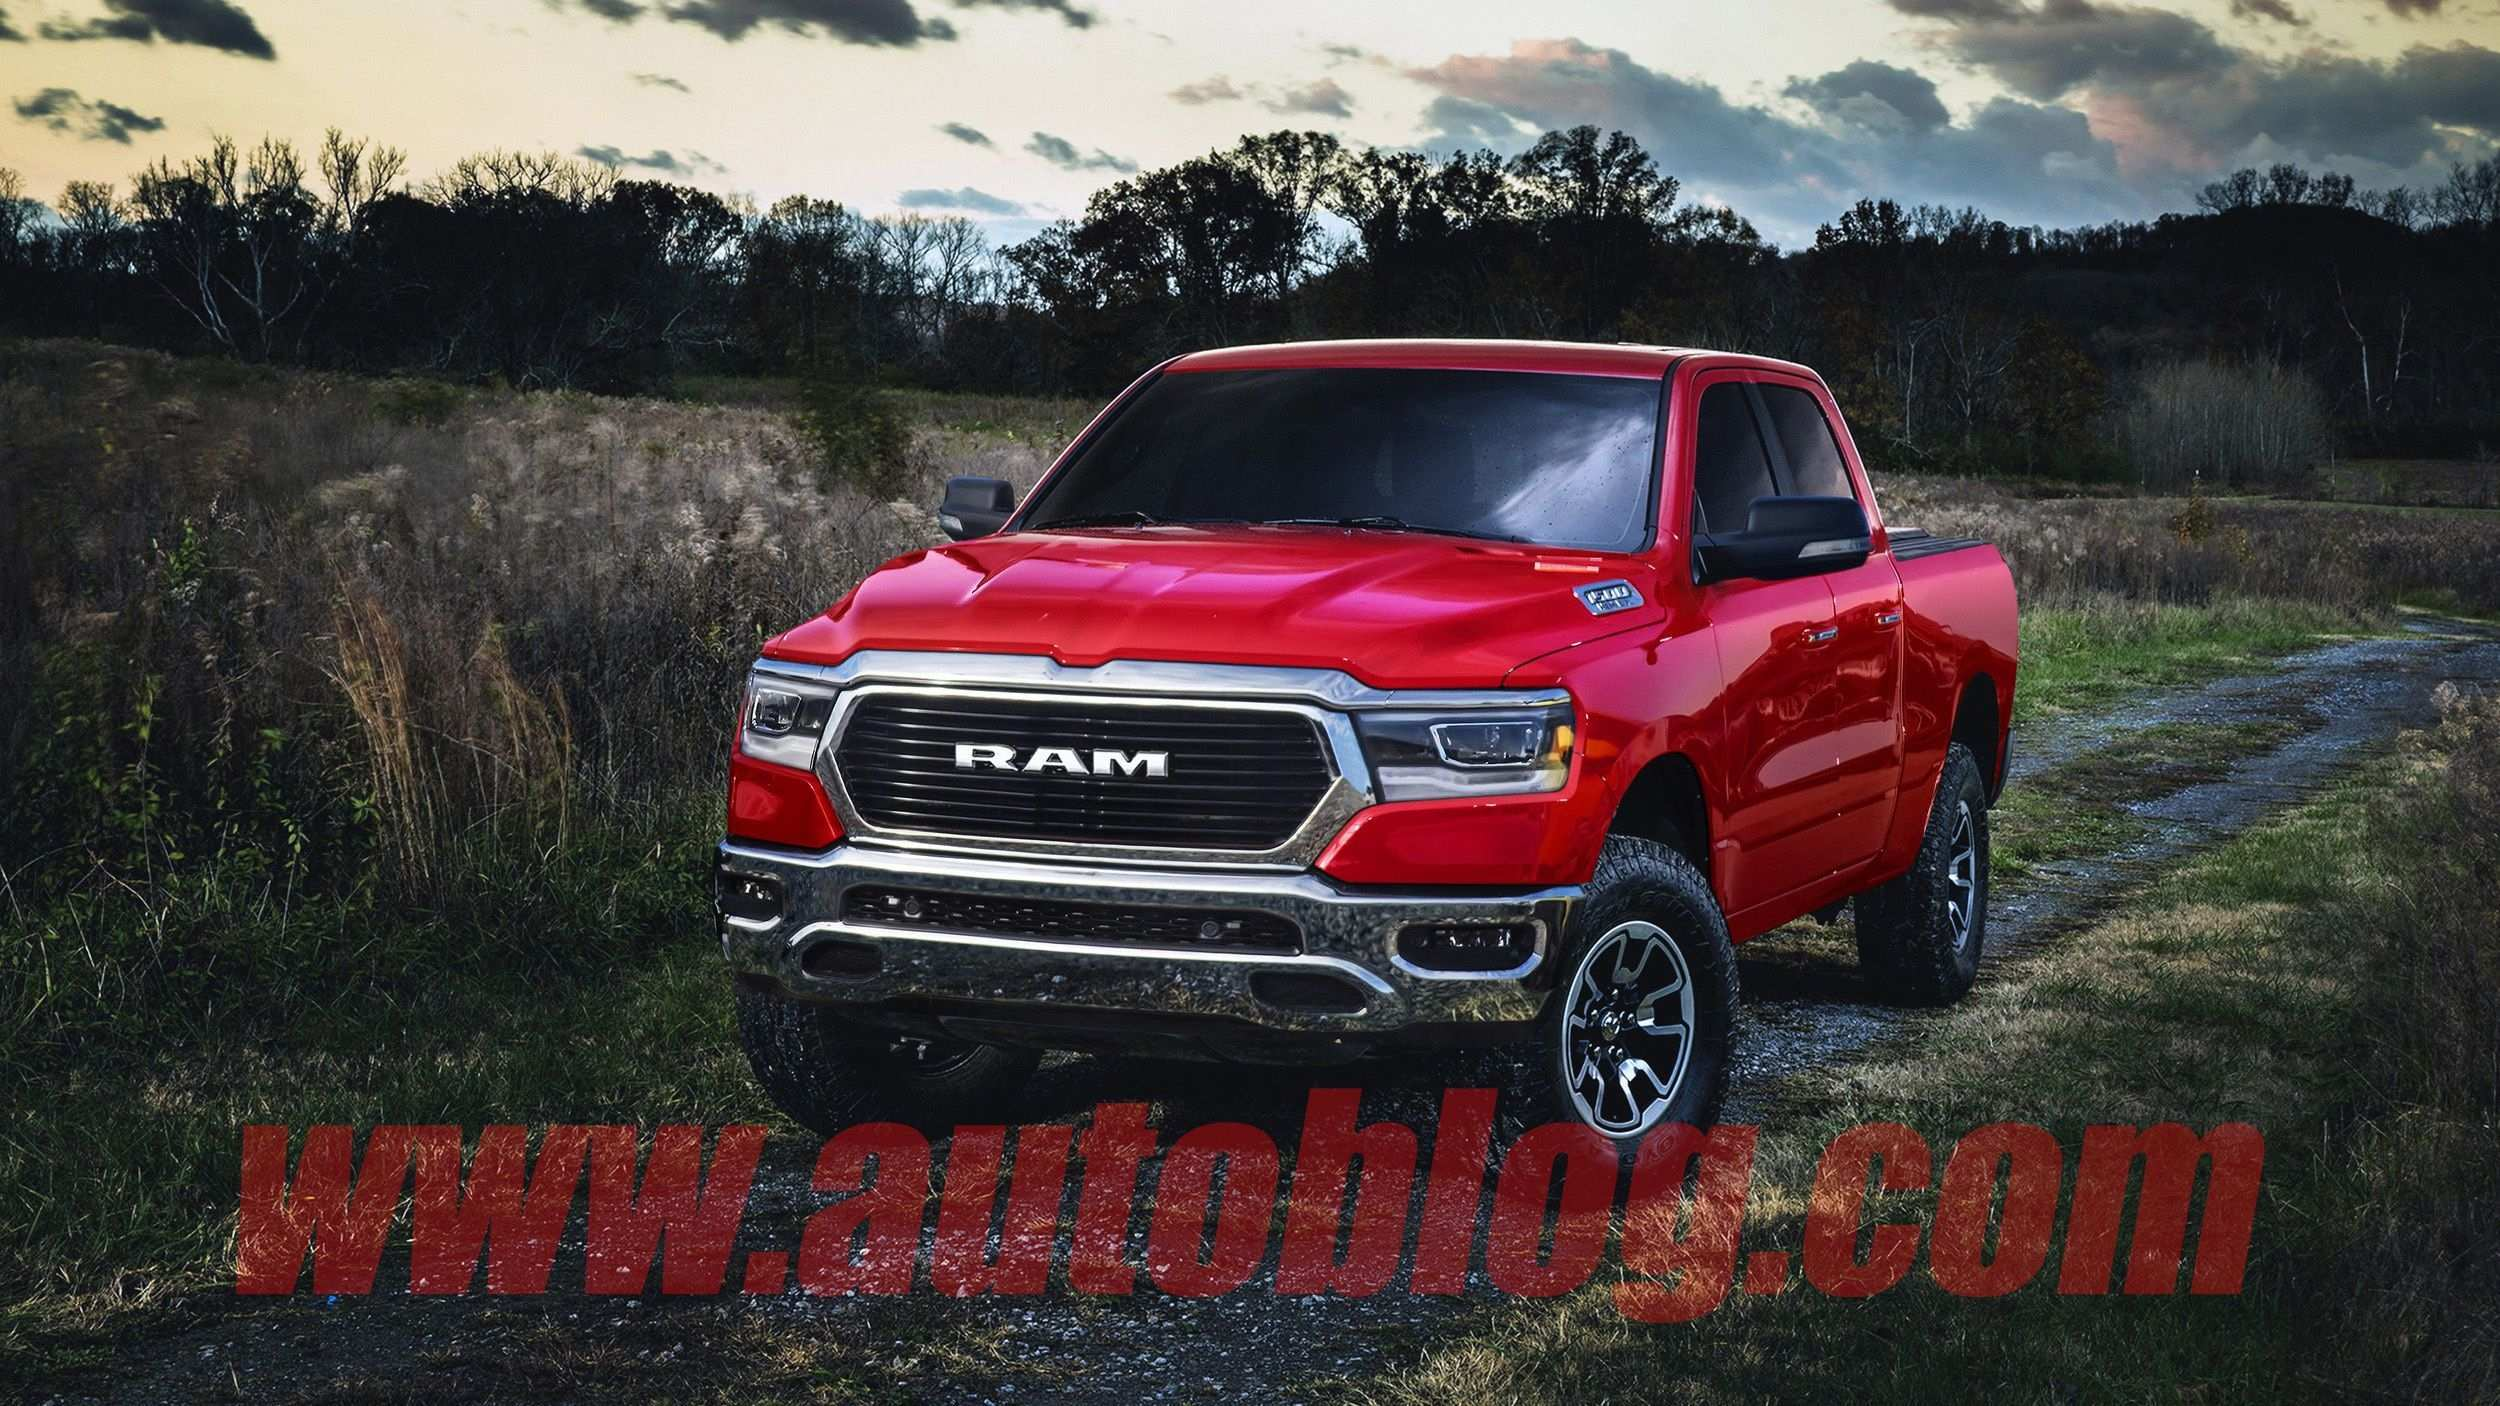 71 Concept of 2019 Dodge Ecodiesel Release Date Research New with 2019 Dodge Ecodiesel Release Date